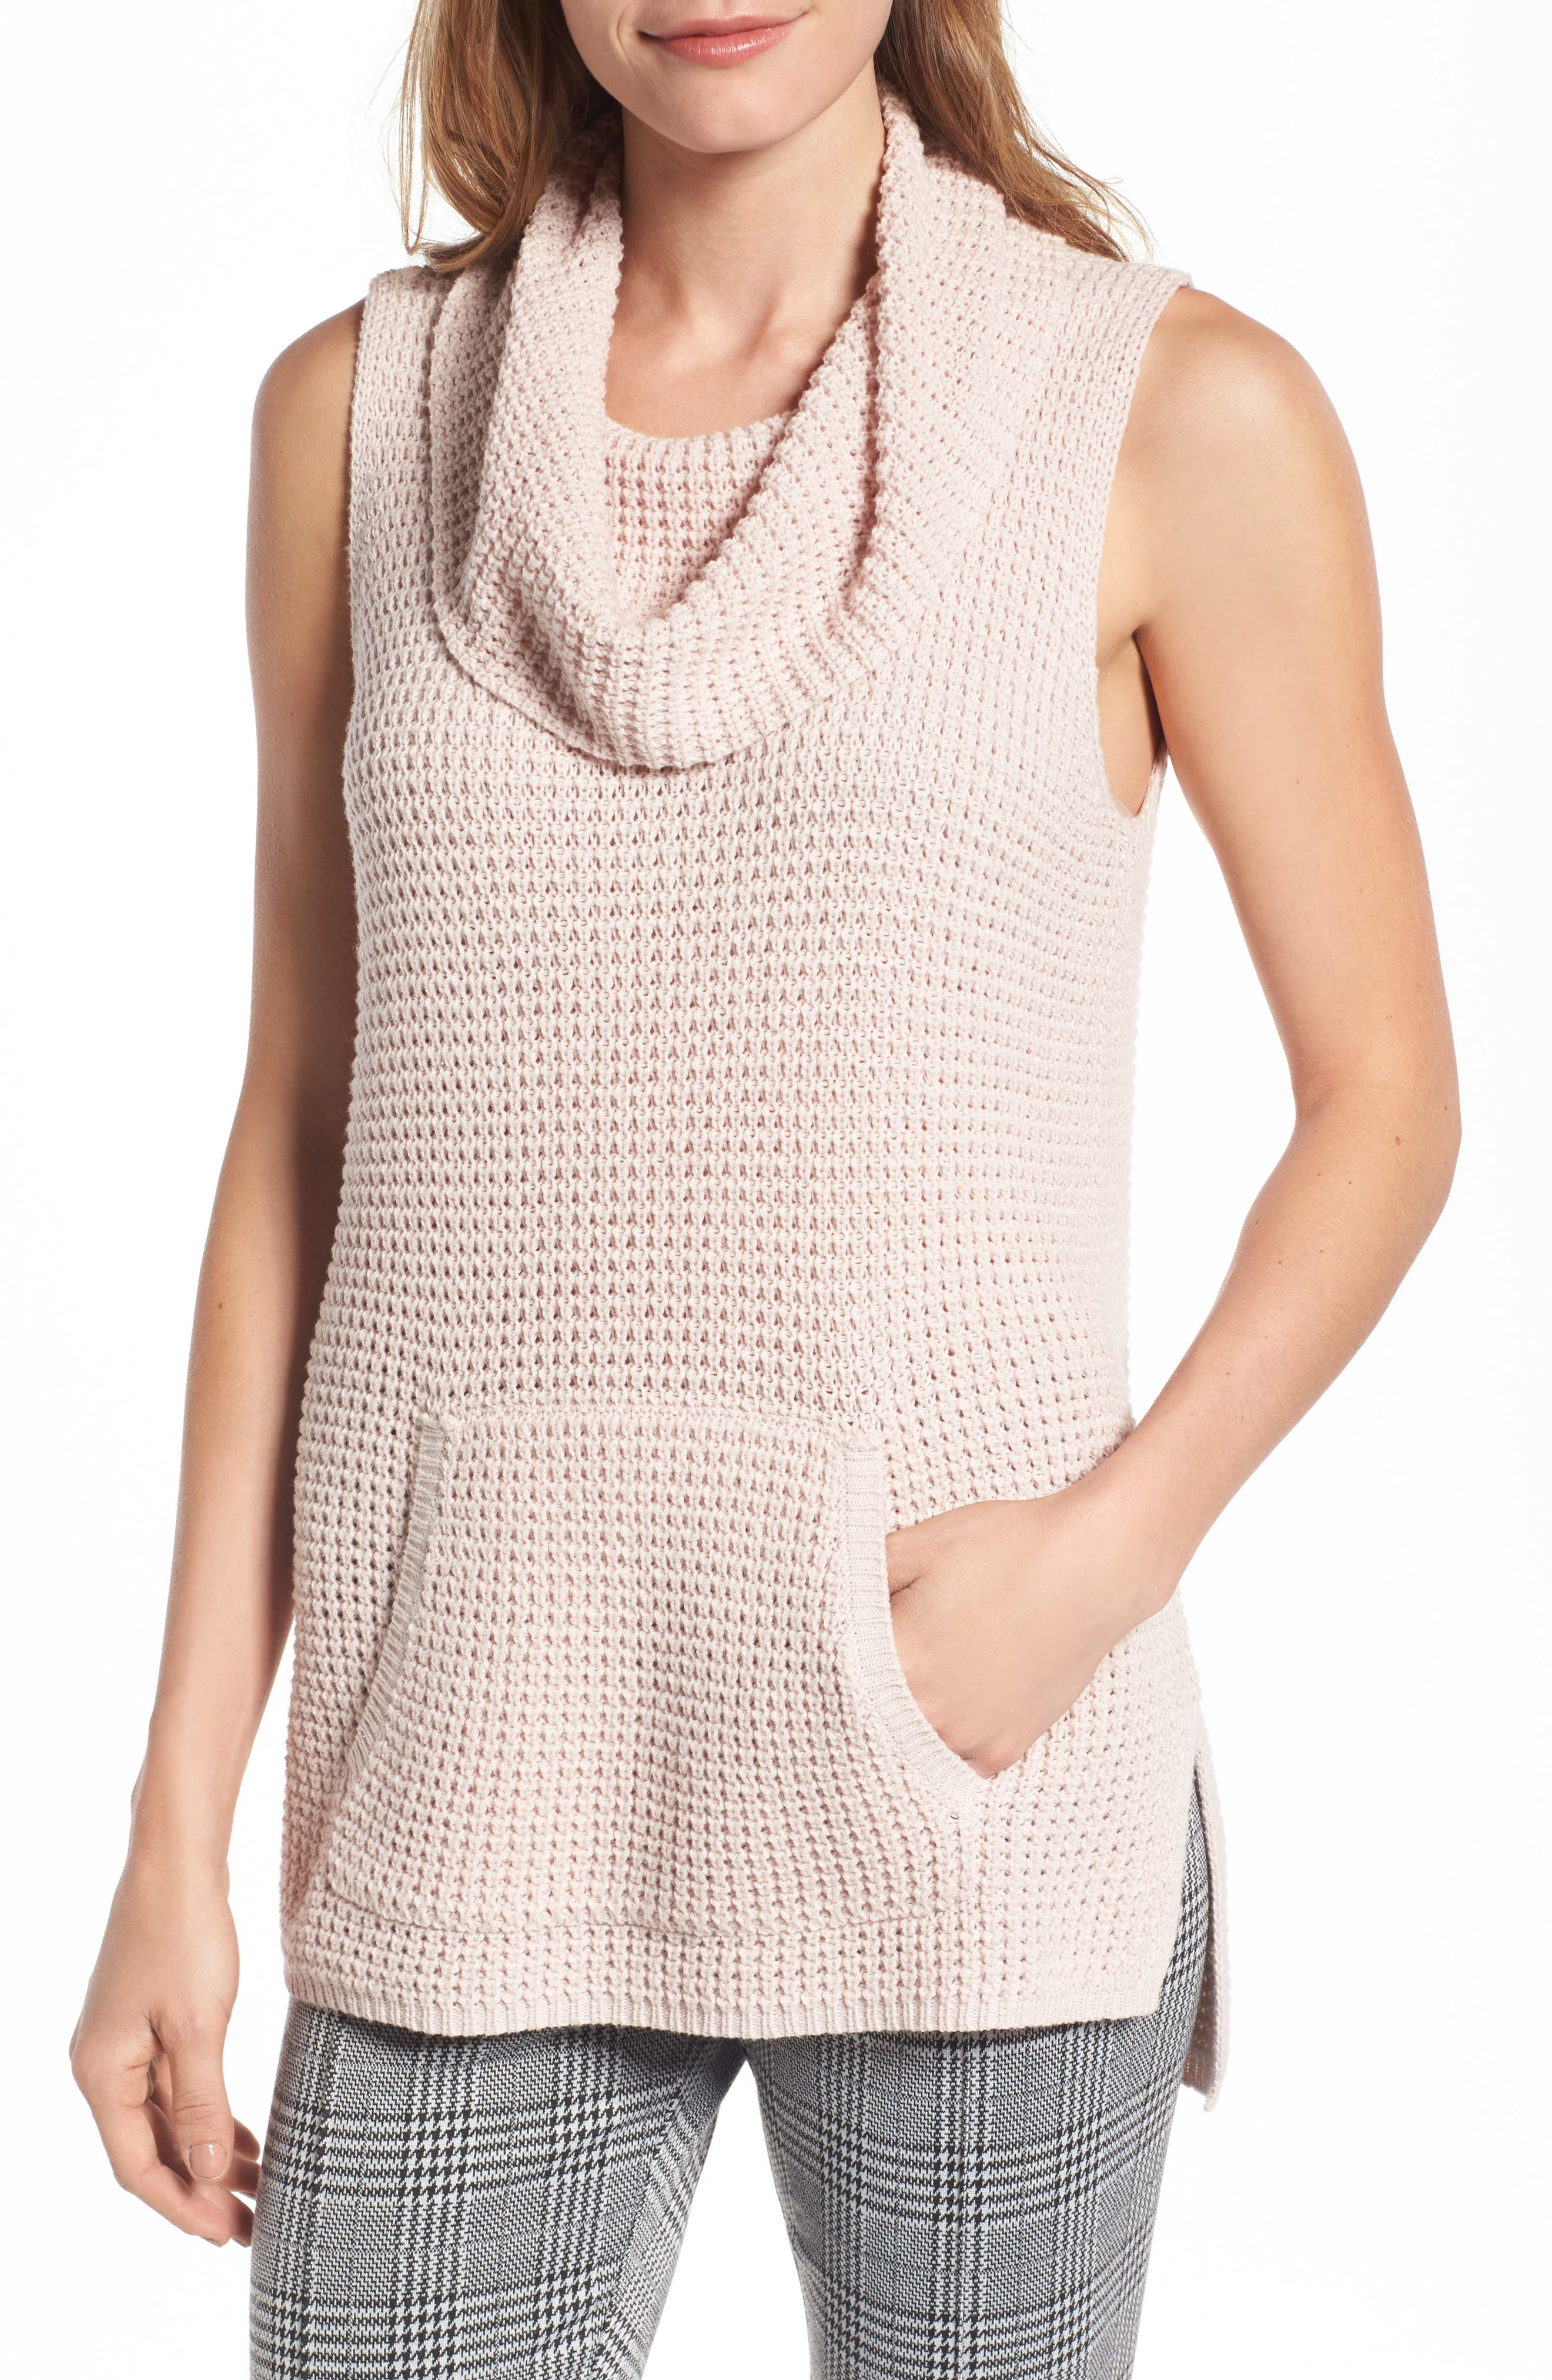 Alternate Image 1 Selected - Two by Vince Camuto Waffle Stitch Vest (Regular & Petite)